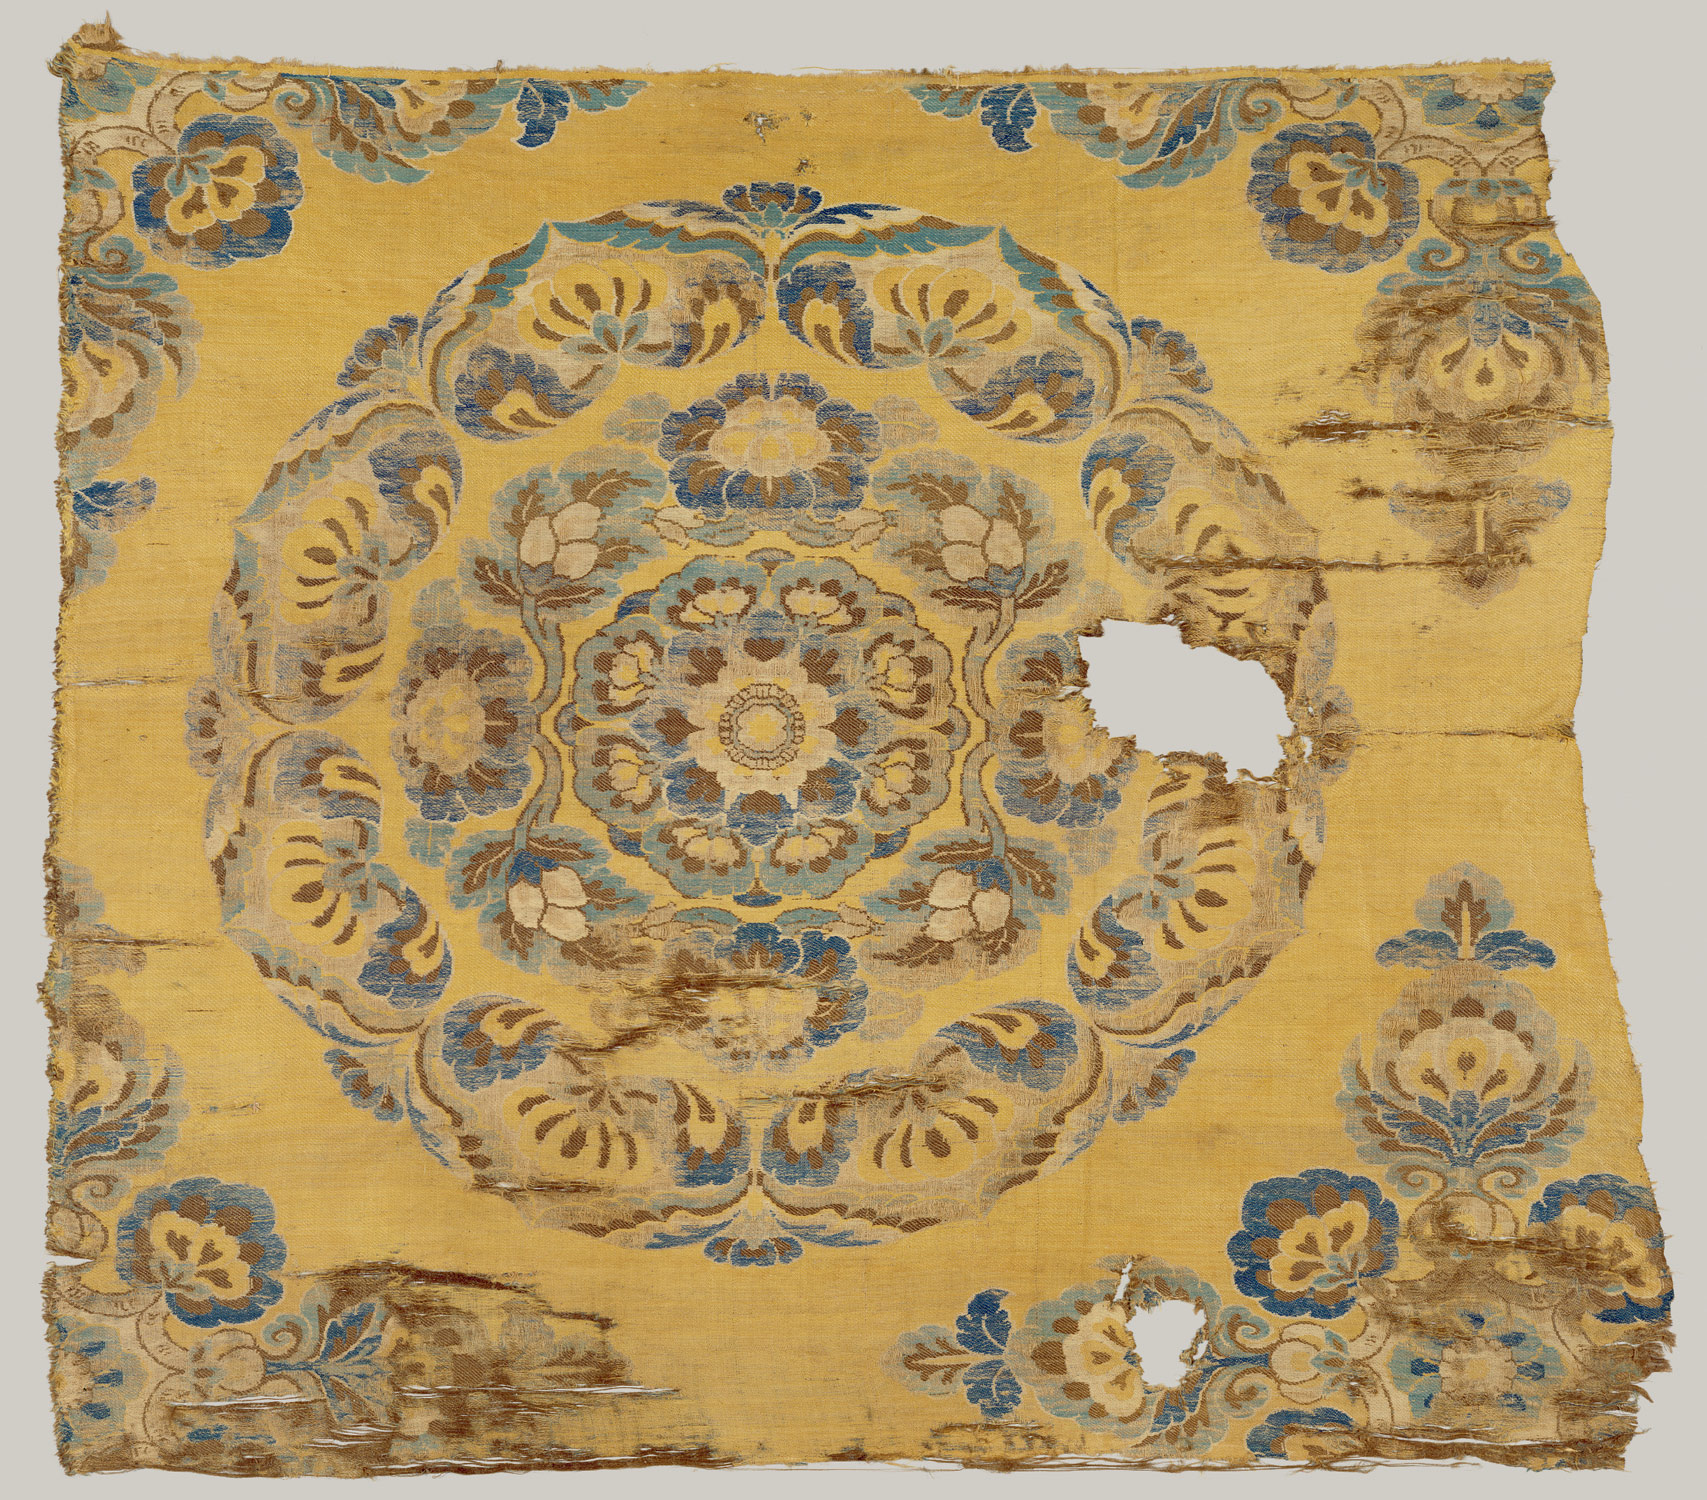 China 5001000 ad chronology heilbrunn timeline of art textile with floral medallion biocorpaavc Choice Image